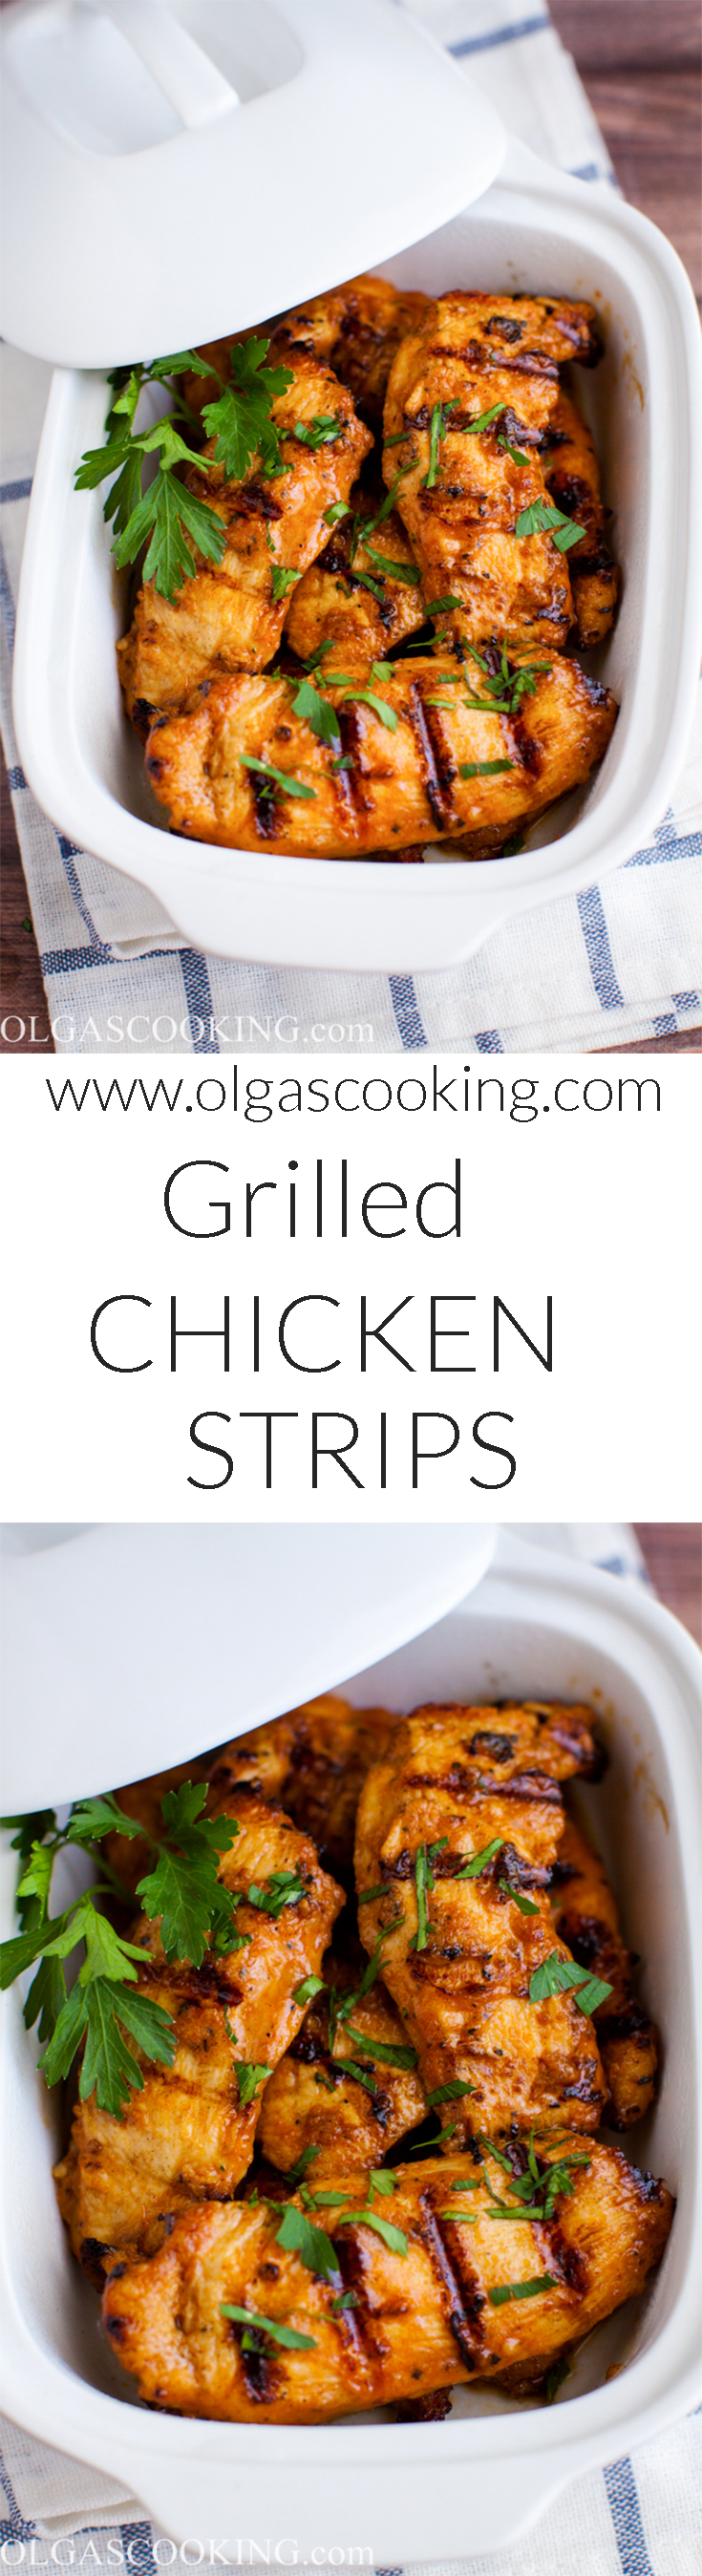 Easy Grilled Chicken Strips